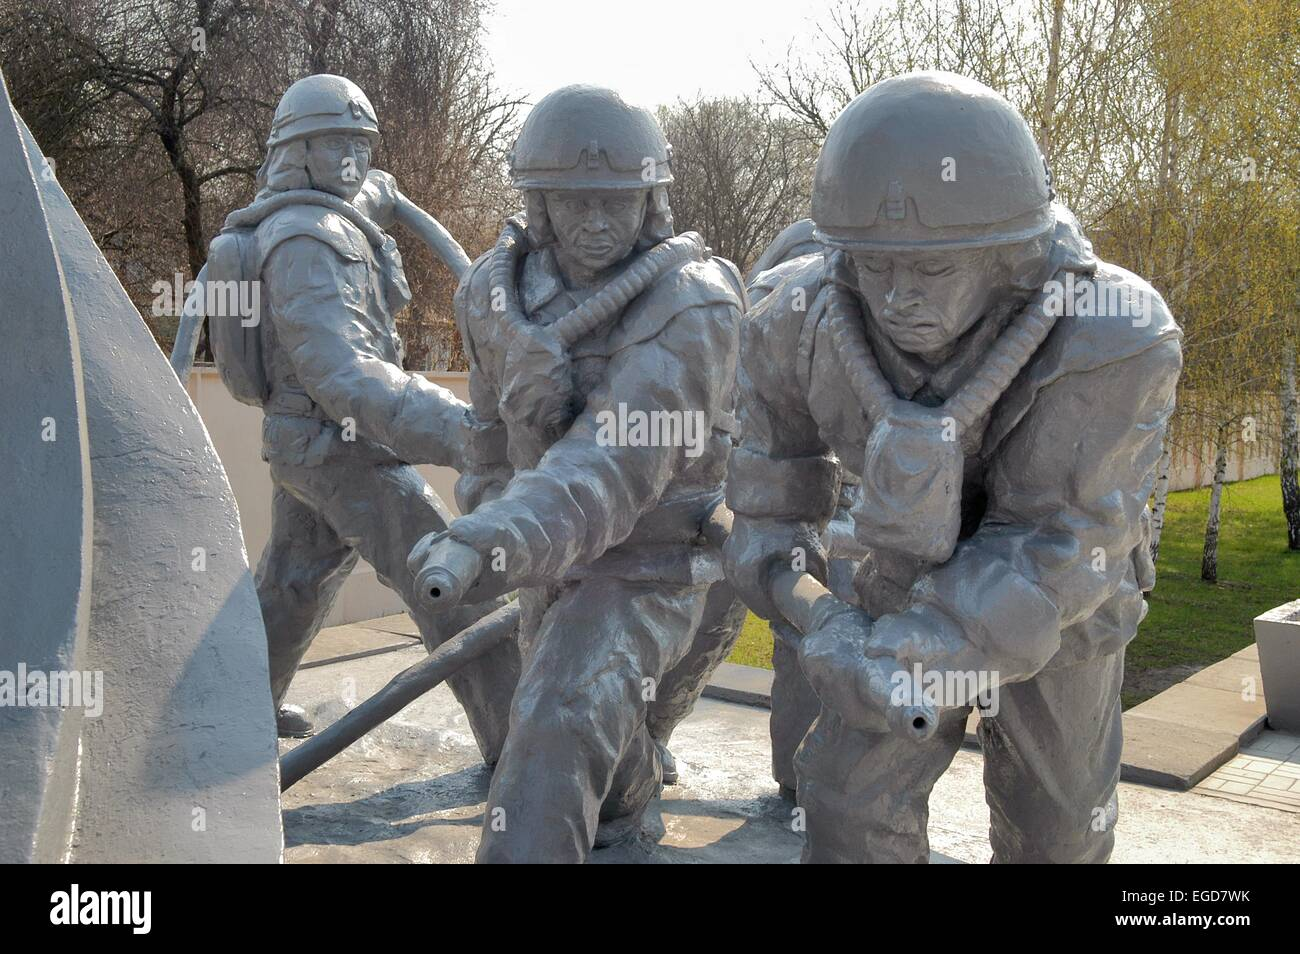 20 years from the nuclear incident of Chernobyl, monument to the 'Liquidators' - Stock Image